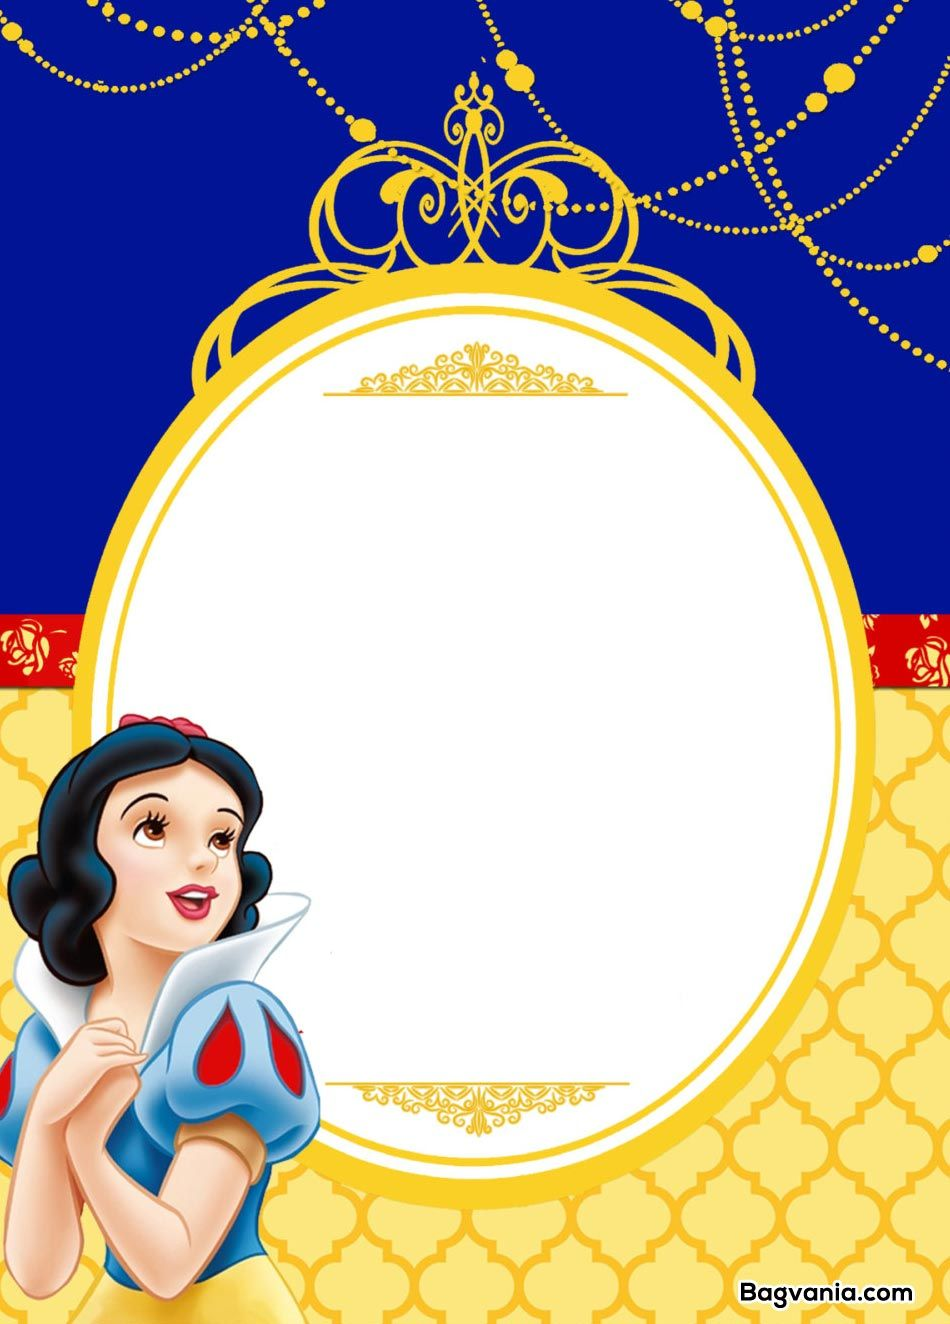 image about Snow White Printable identify No cost Printable Snow White Birthday Invites Bagvania